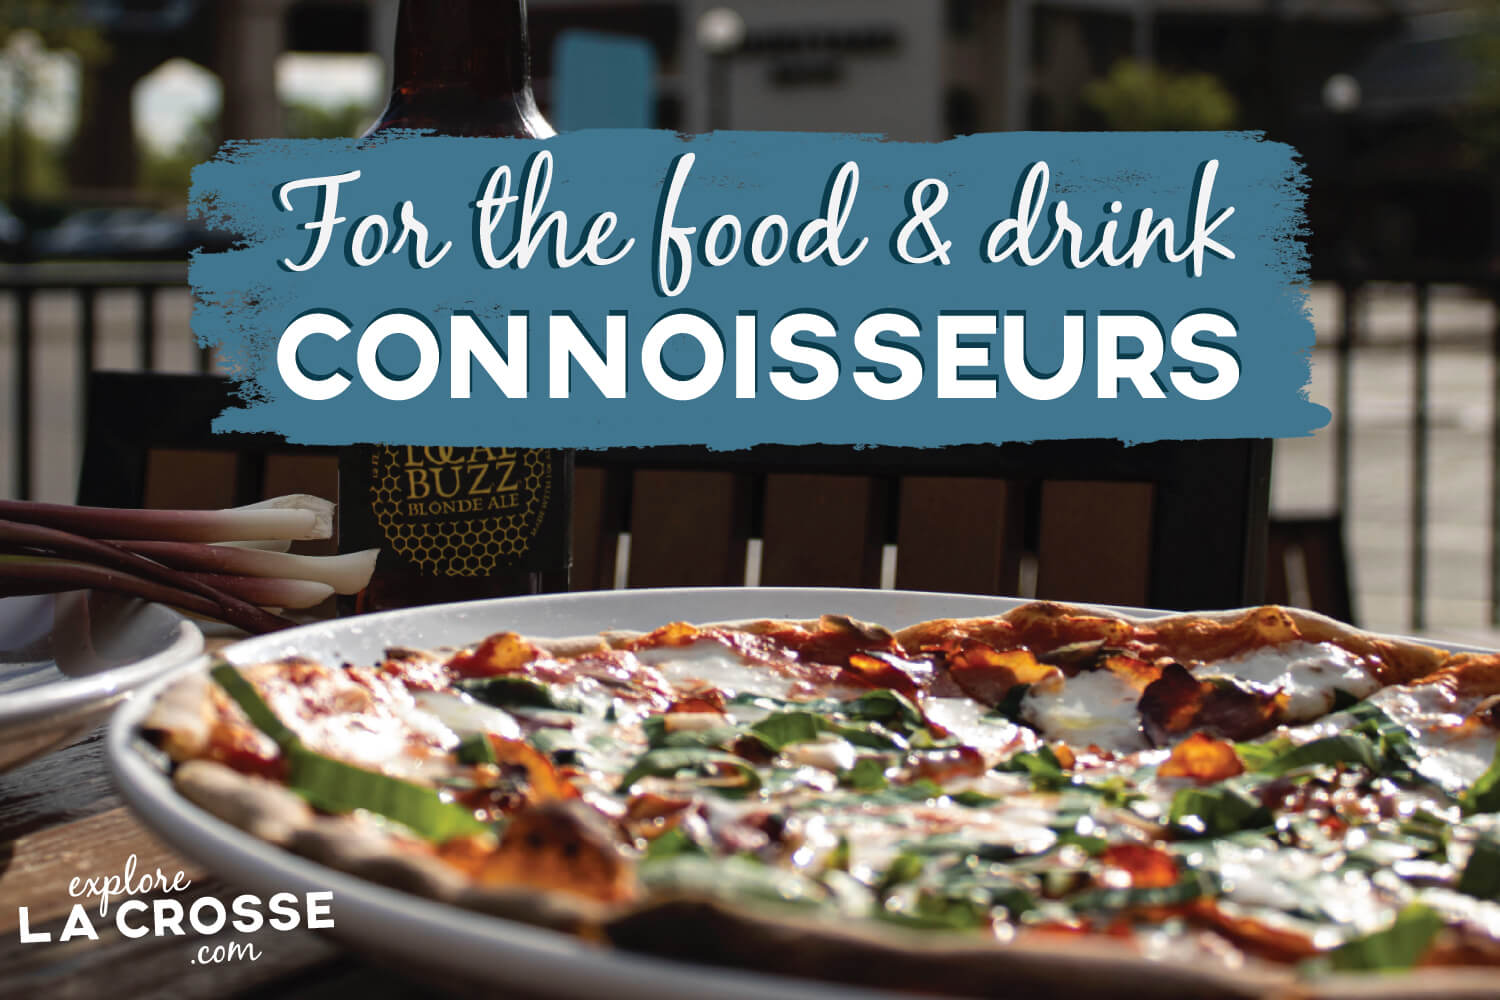 FOR THE FOOD & DRINK CONNOISSEURS